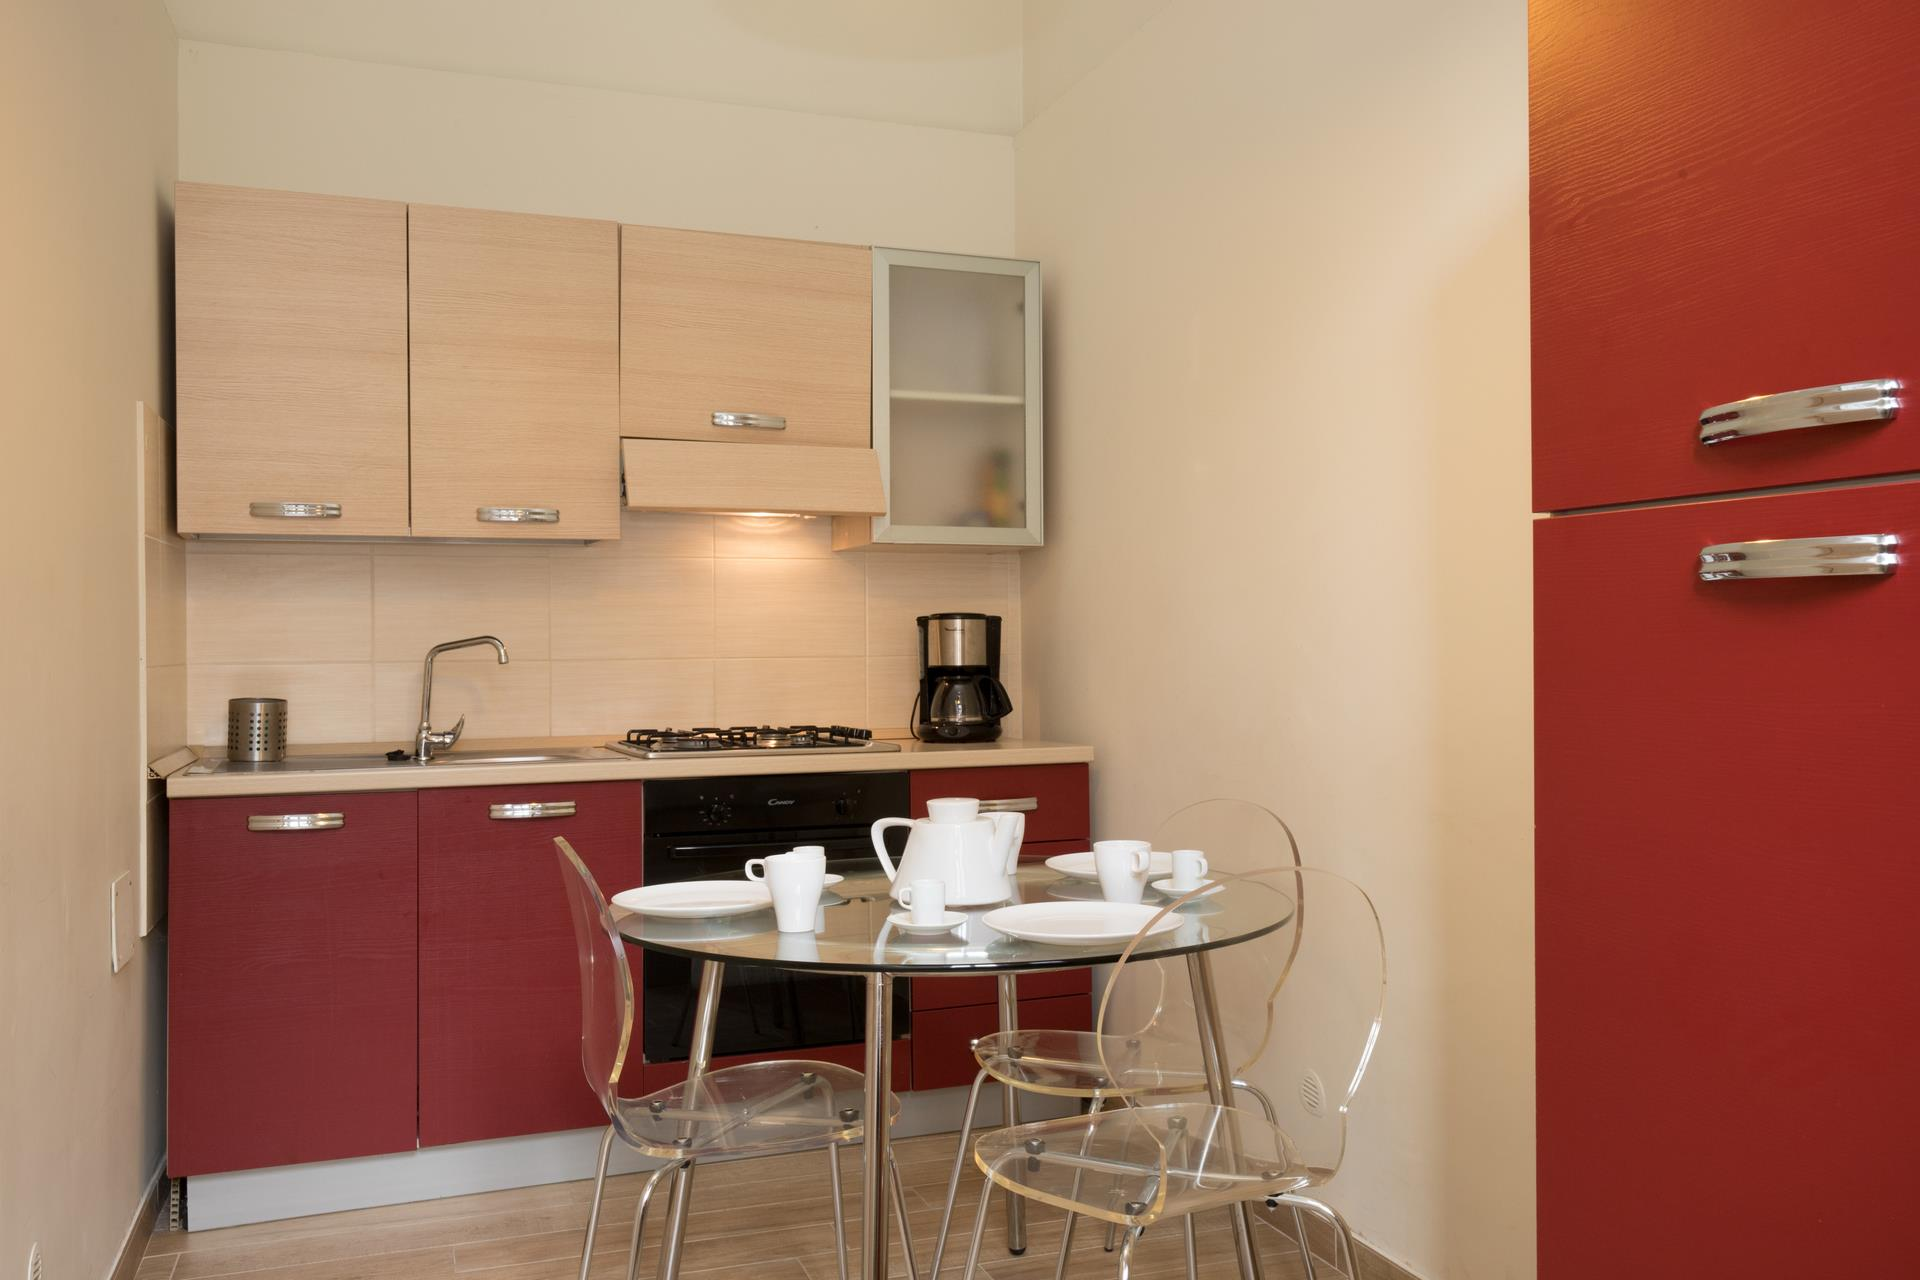 Apartment Apt E - Wellness House Galilei 9 sleeps photo 18685058